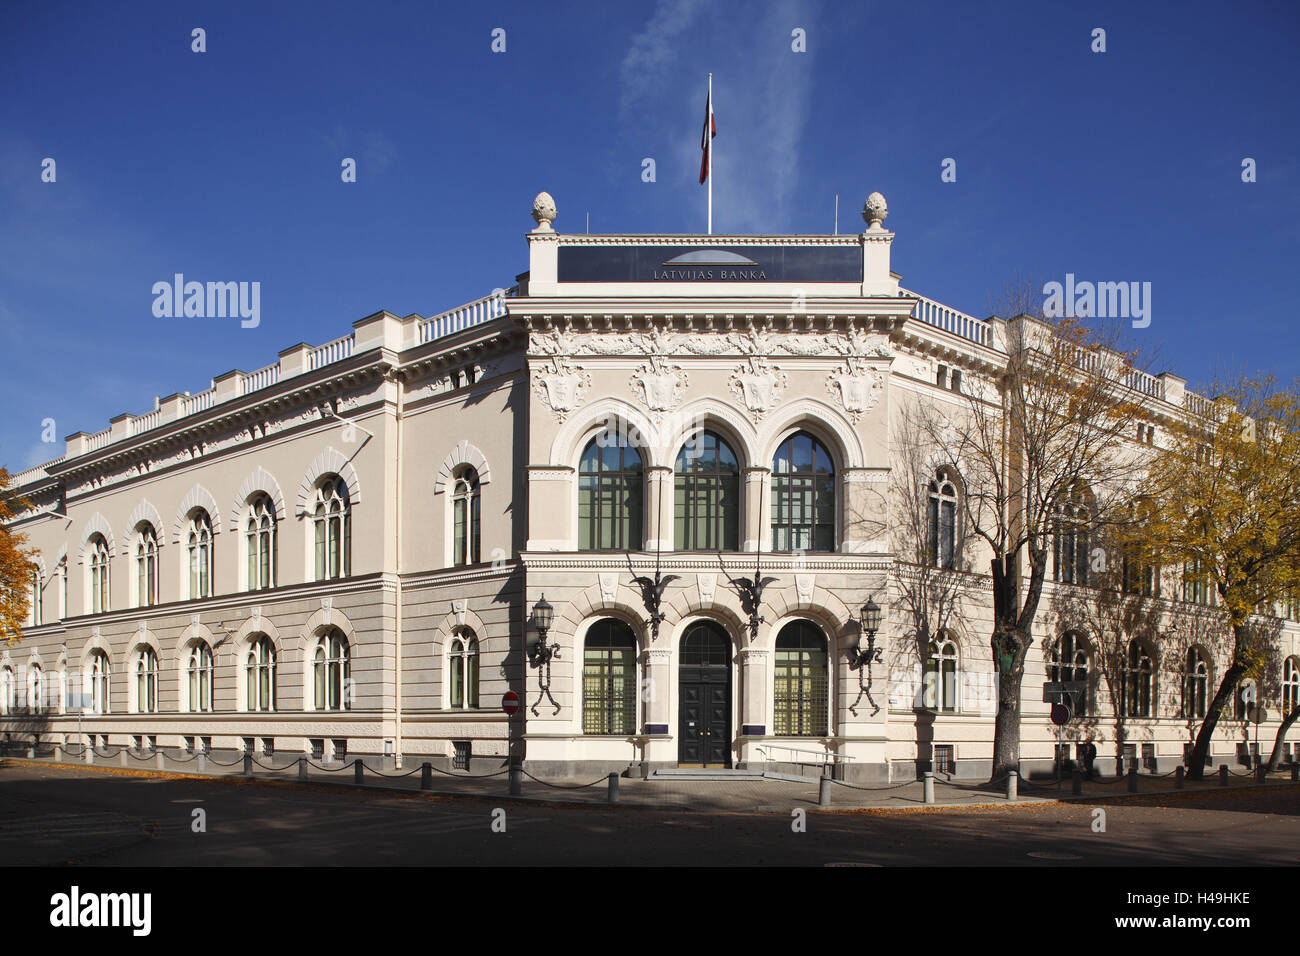 Latvia, Riga, Latvian bank, - Stock Image